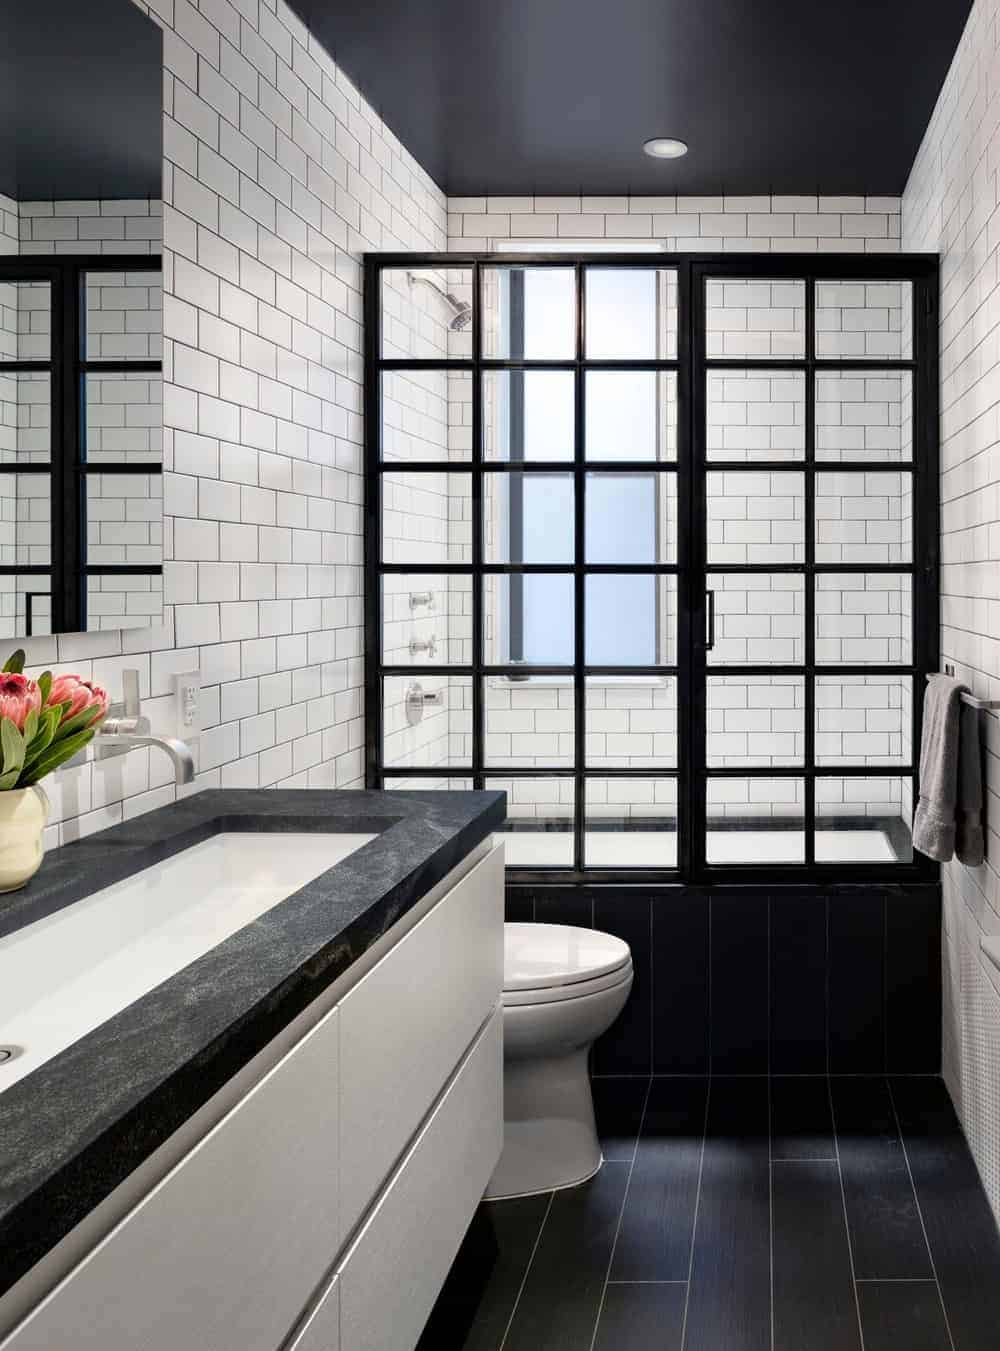 The white tiles of the walls are fixed with black grout that emphasizes the lining of brick wall pattern. This is contrasted by the black flooring that matches the black frames of the French glass doors leading to the shower area.